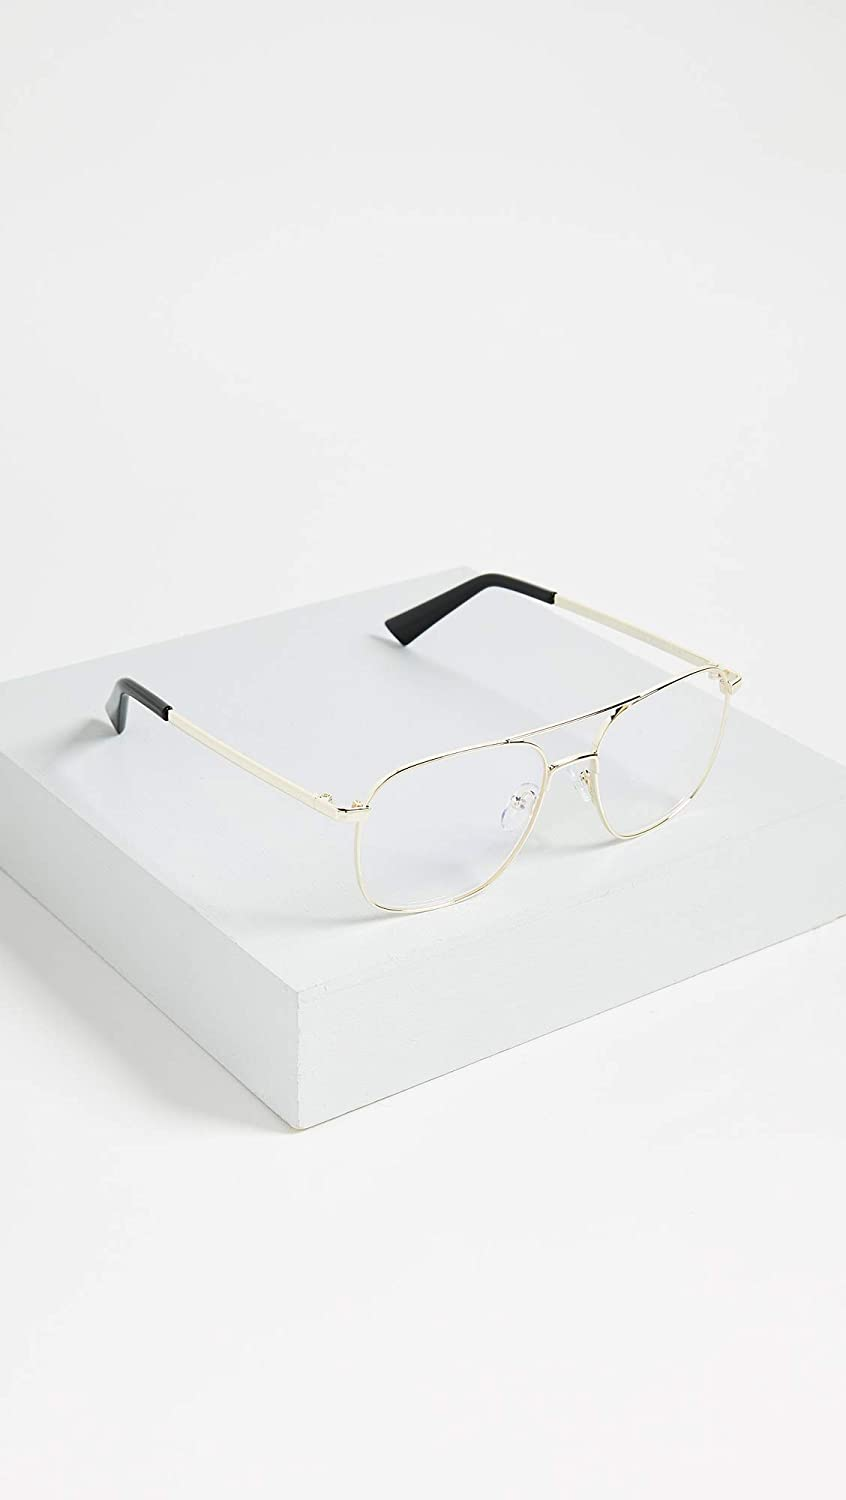 65261f26ca9b Amazon.com: The Book Club Women's Bored of the Flings Reading Glasses,  Gold/Clear, One Size: Clothing